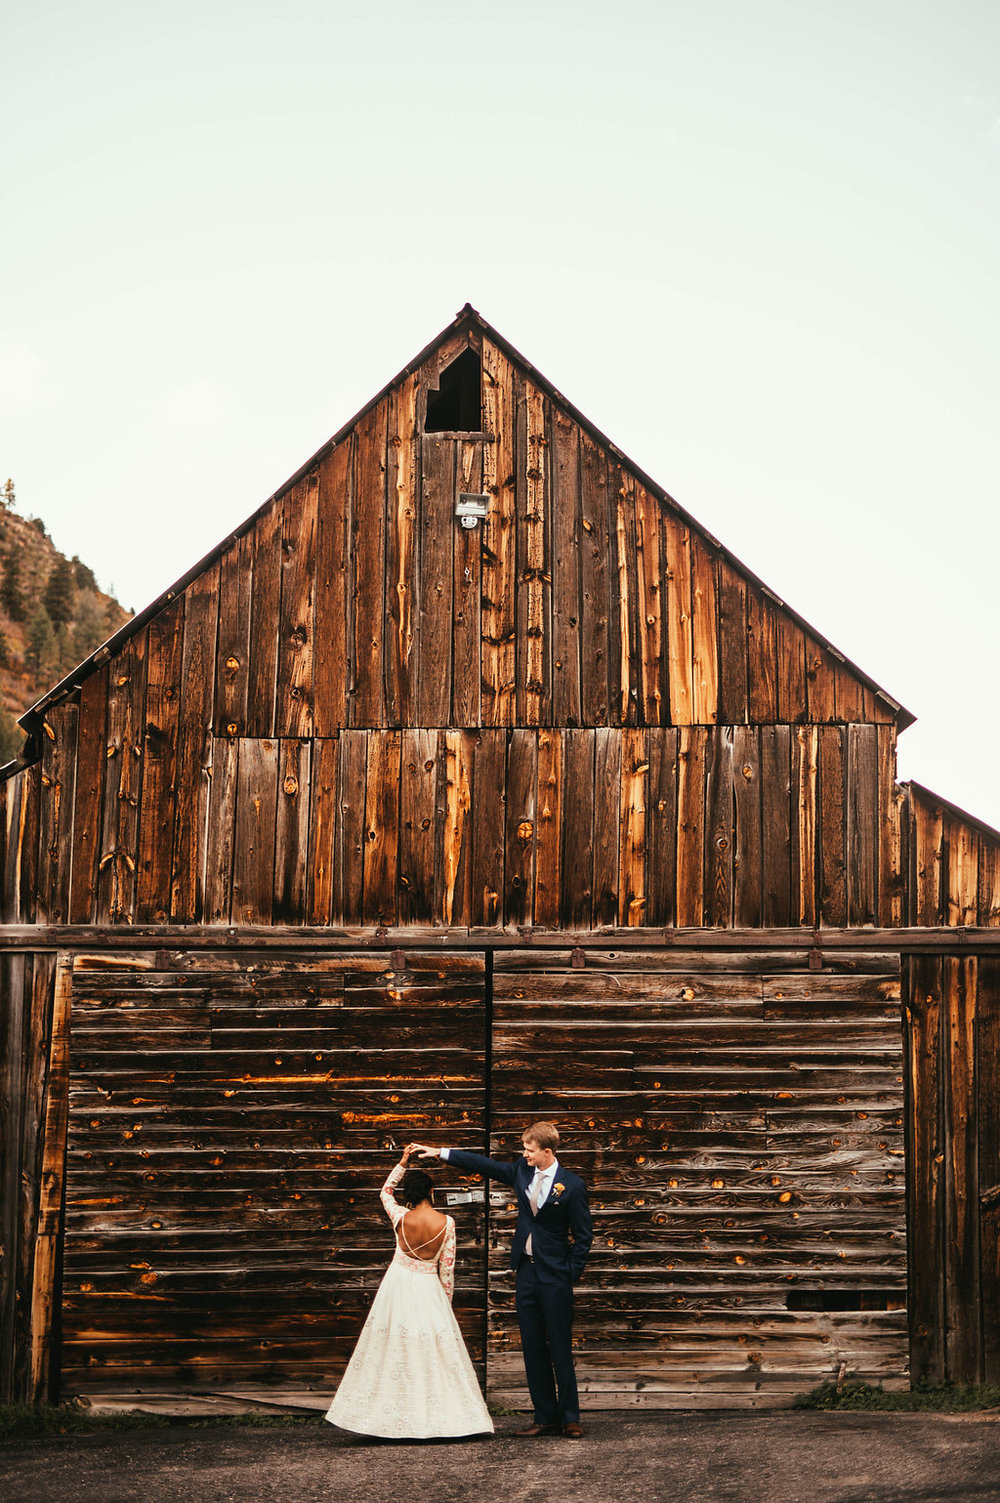 soniaanddan_coloradoelopement769.jpg